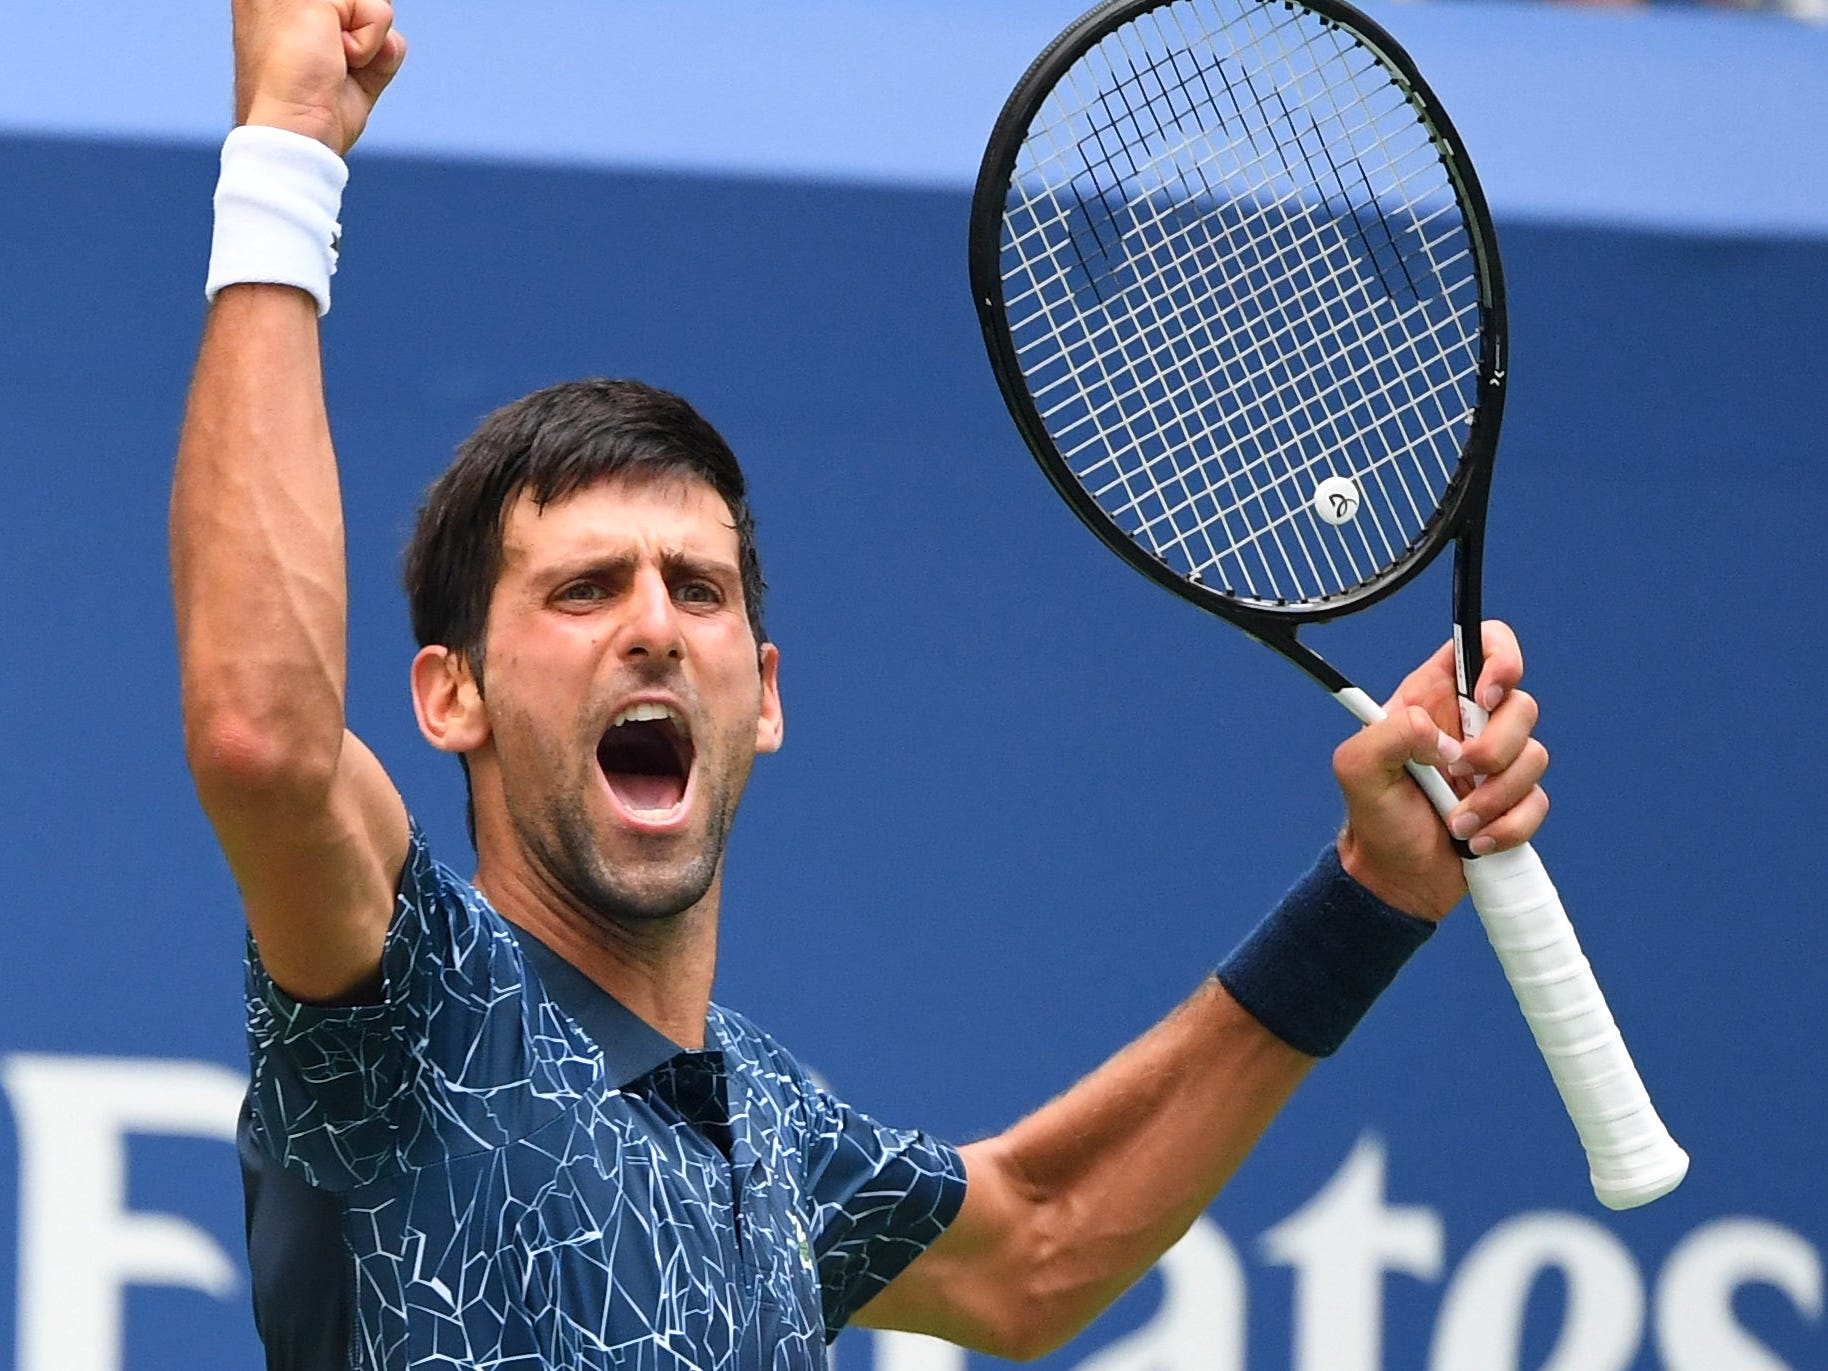 Novak Djokovic of Serbia celebrates winning the third set against Marton Fucsovics of Hungary.